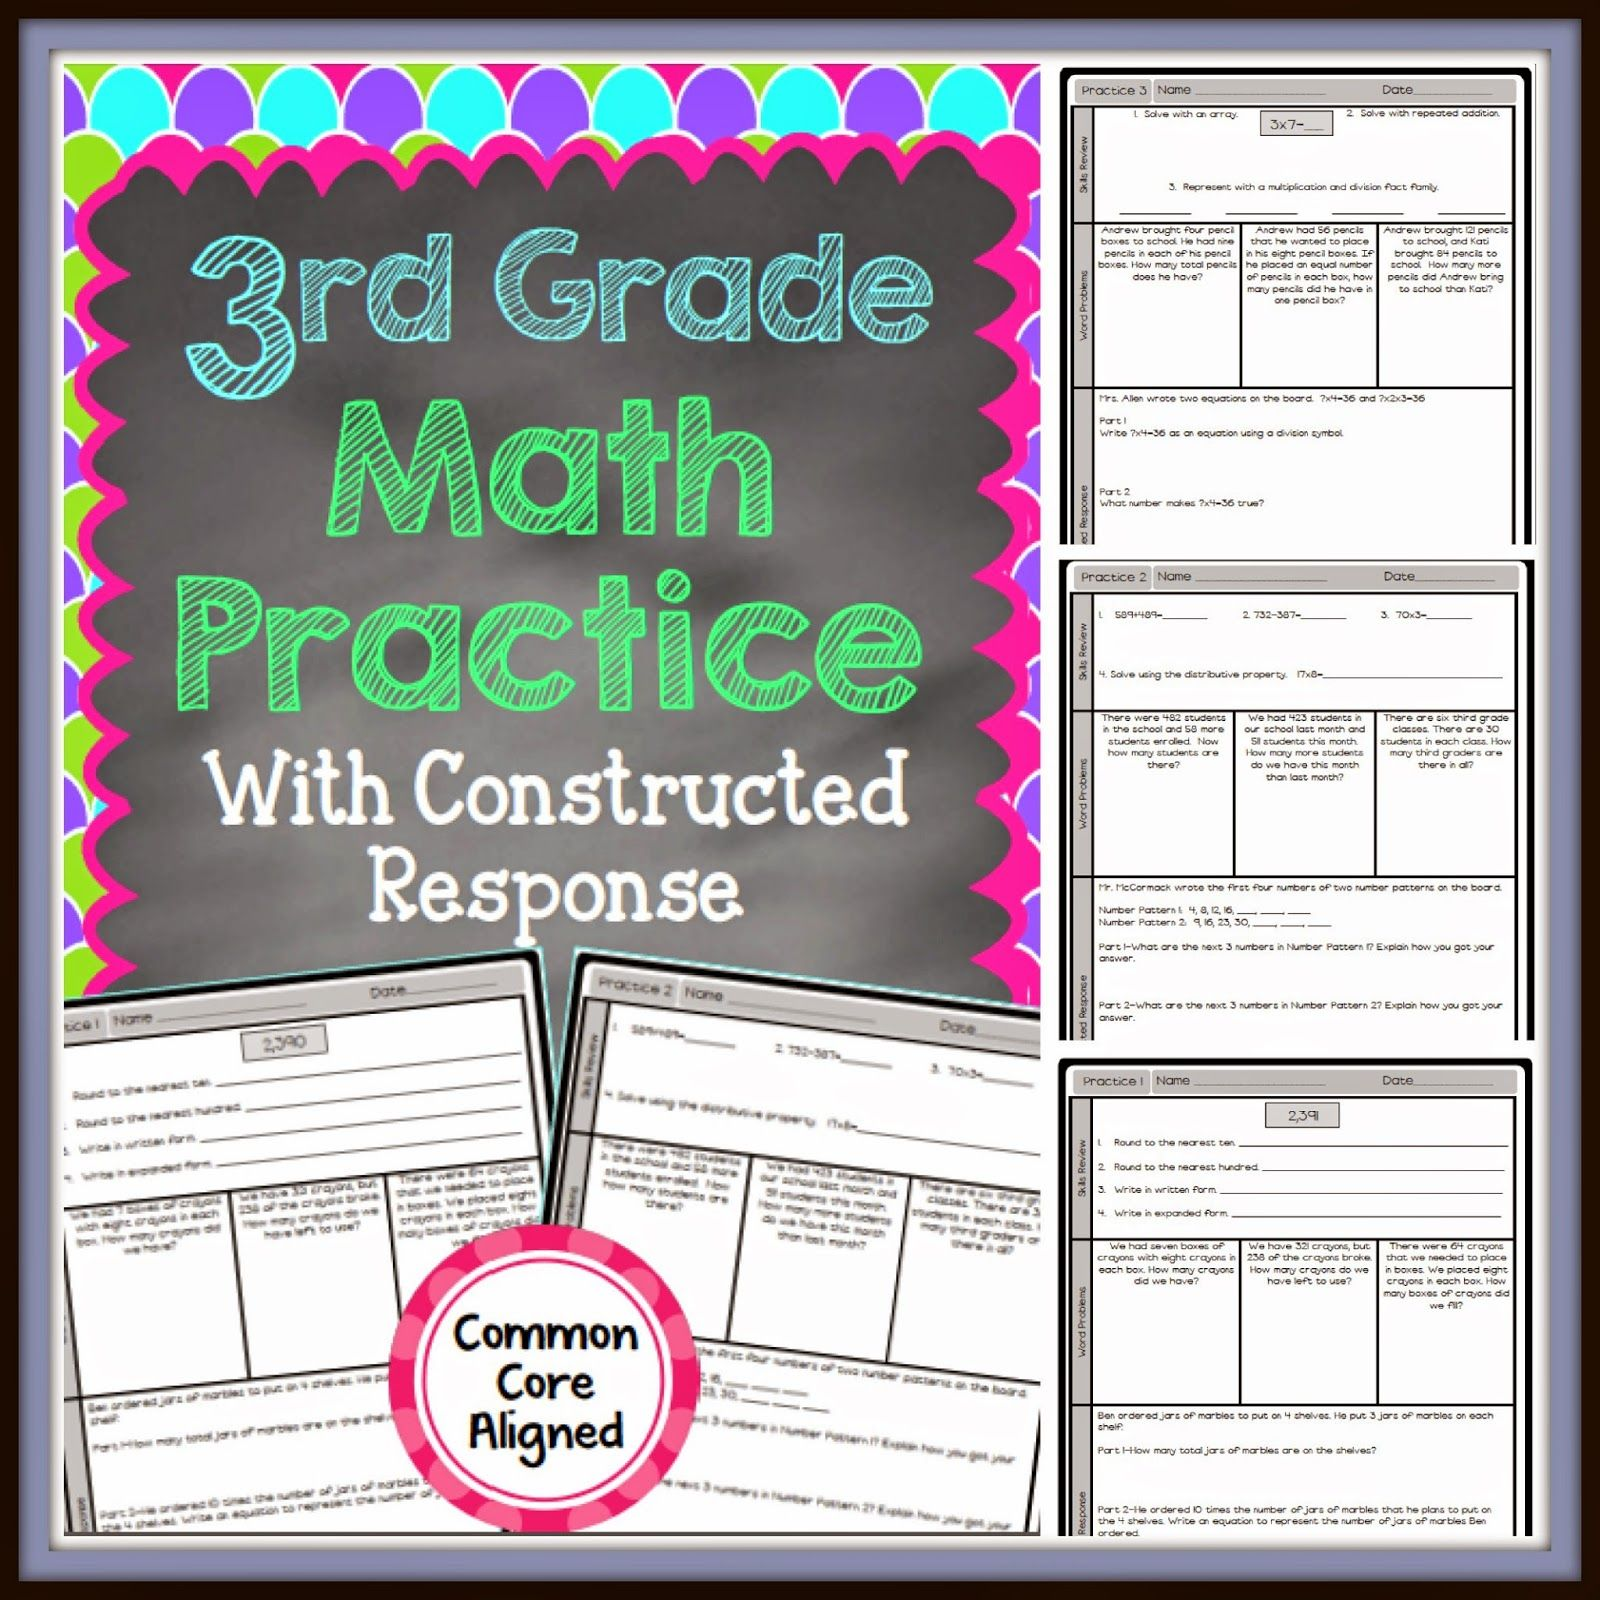 Get Your Students Ready For Their High Stakes Test With This 3rd Grade Math Practice There Is A